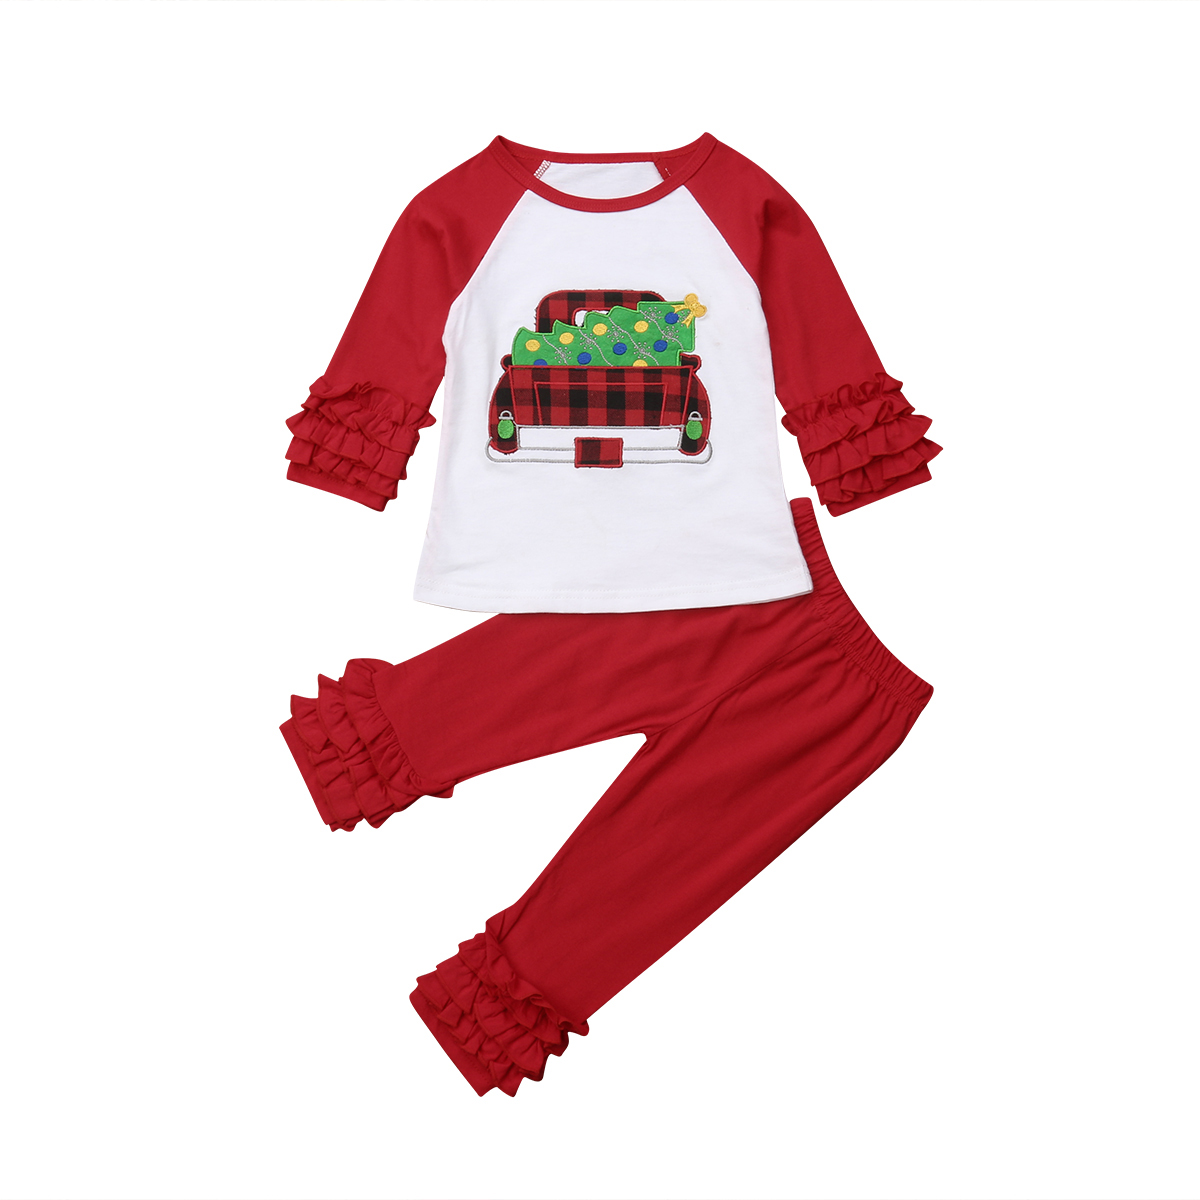 Christmas Kids Baby Girls Clothing Tops Cotton T-shirt Long Sleeve Ruffle Pants Xmax Cotton 2PCS Outfit Clothes Set Girl 0-6T b a1785 new fashion 3 13t kids baby girls clothes set summer children short sleeve t shirt tops skirt 2pcs kids outfit suit